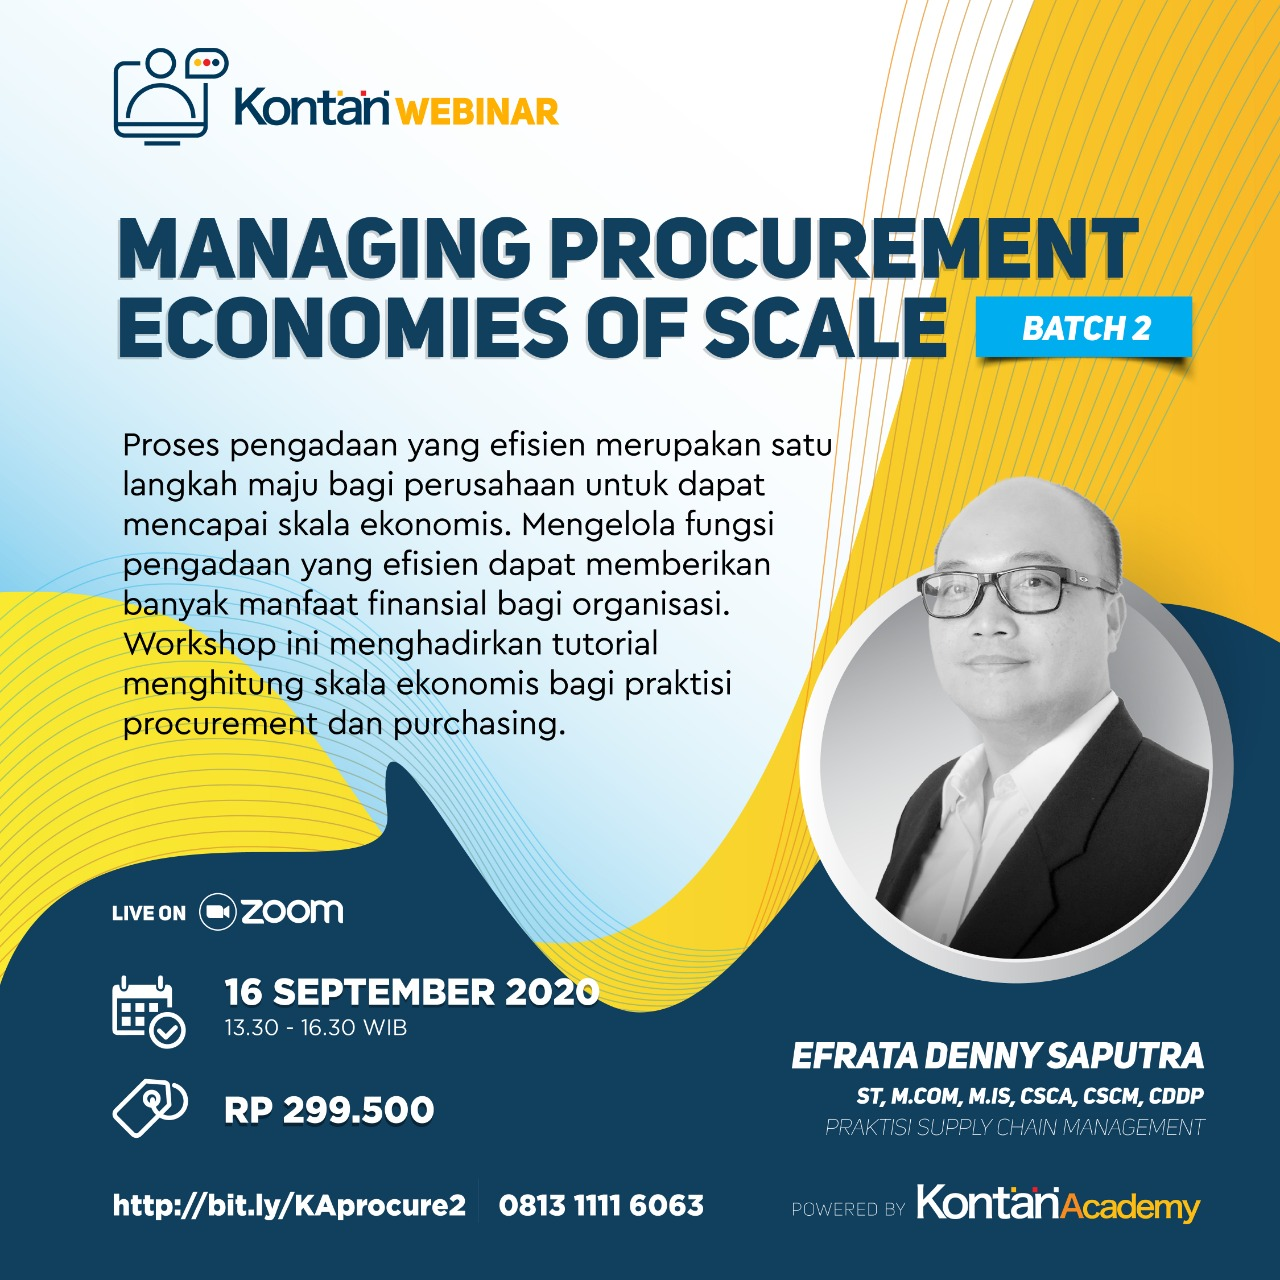 Managing Procurement Economies of Scale Batch 2